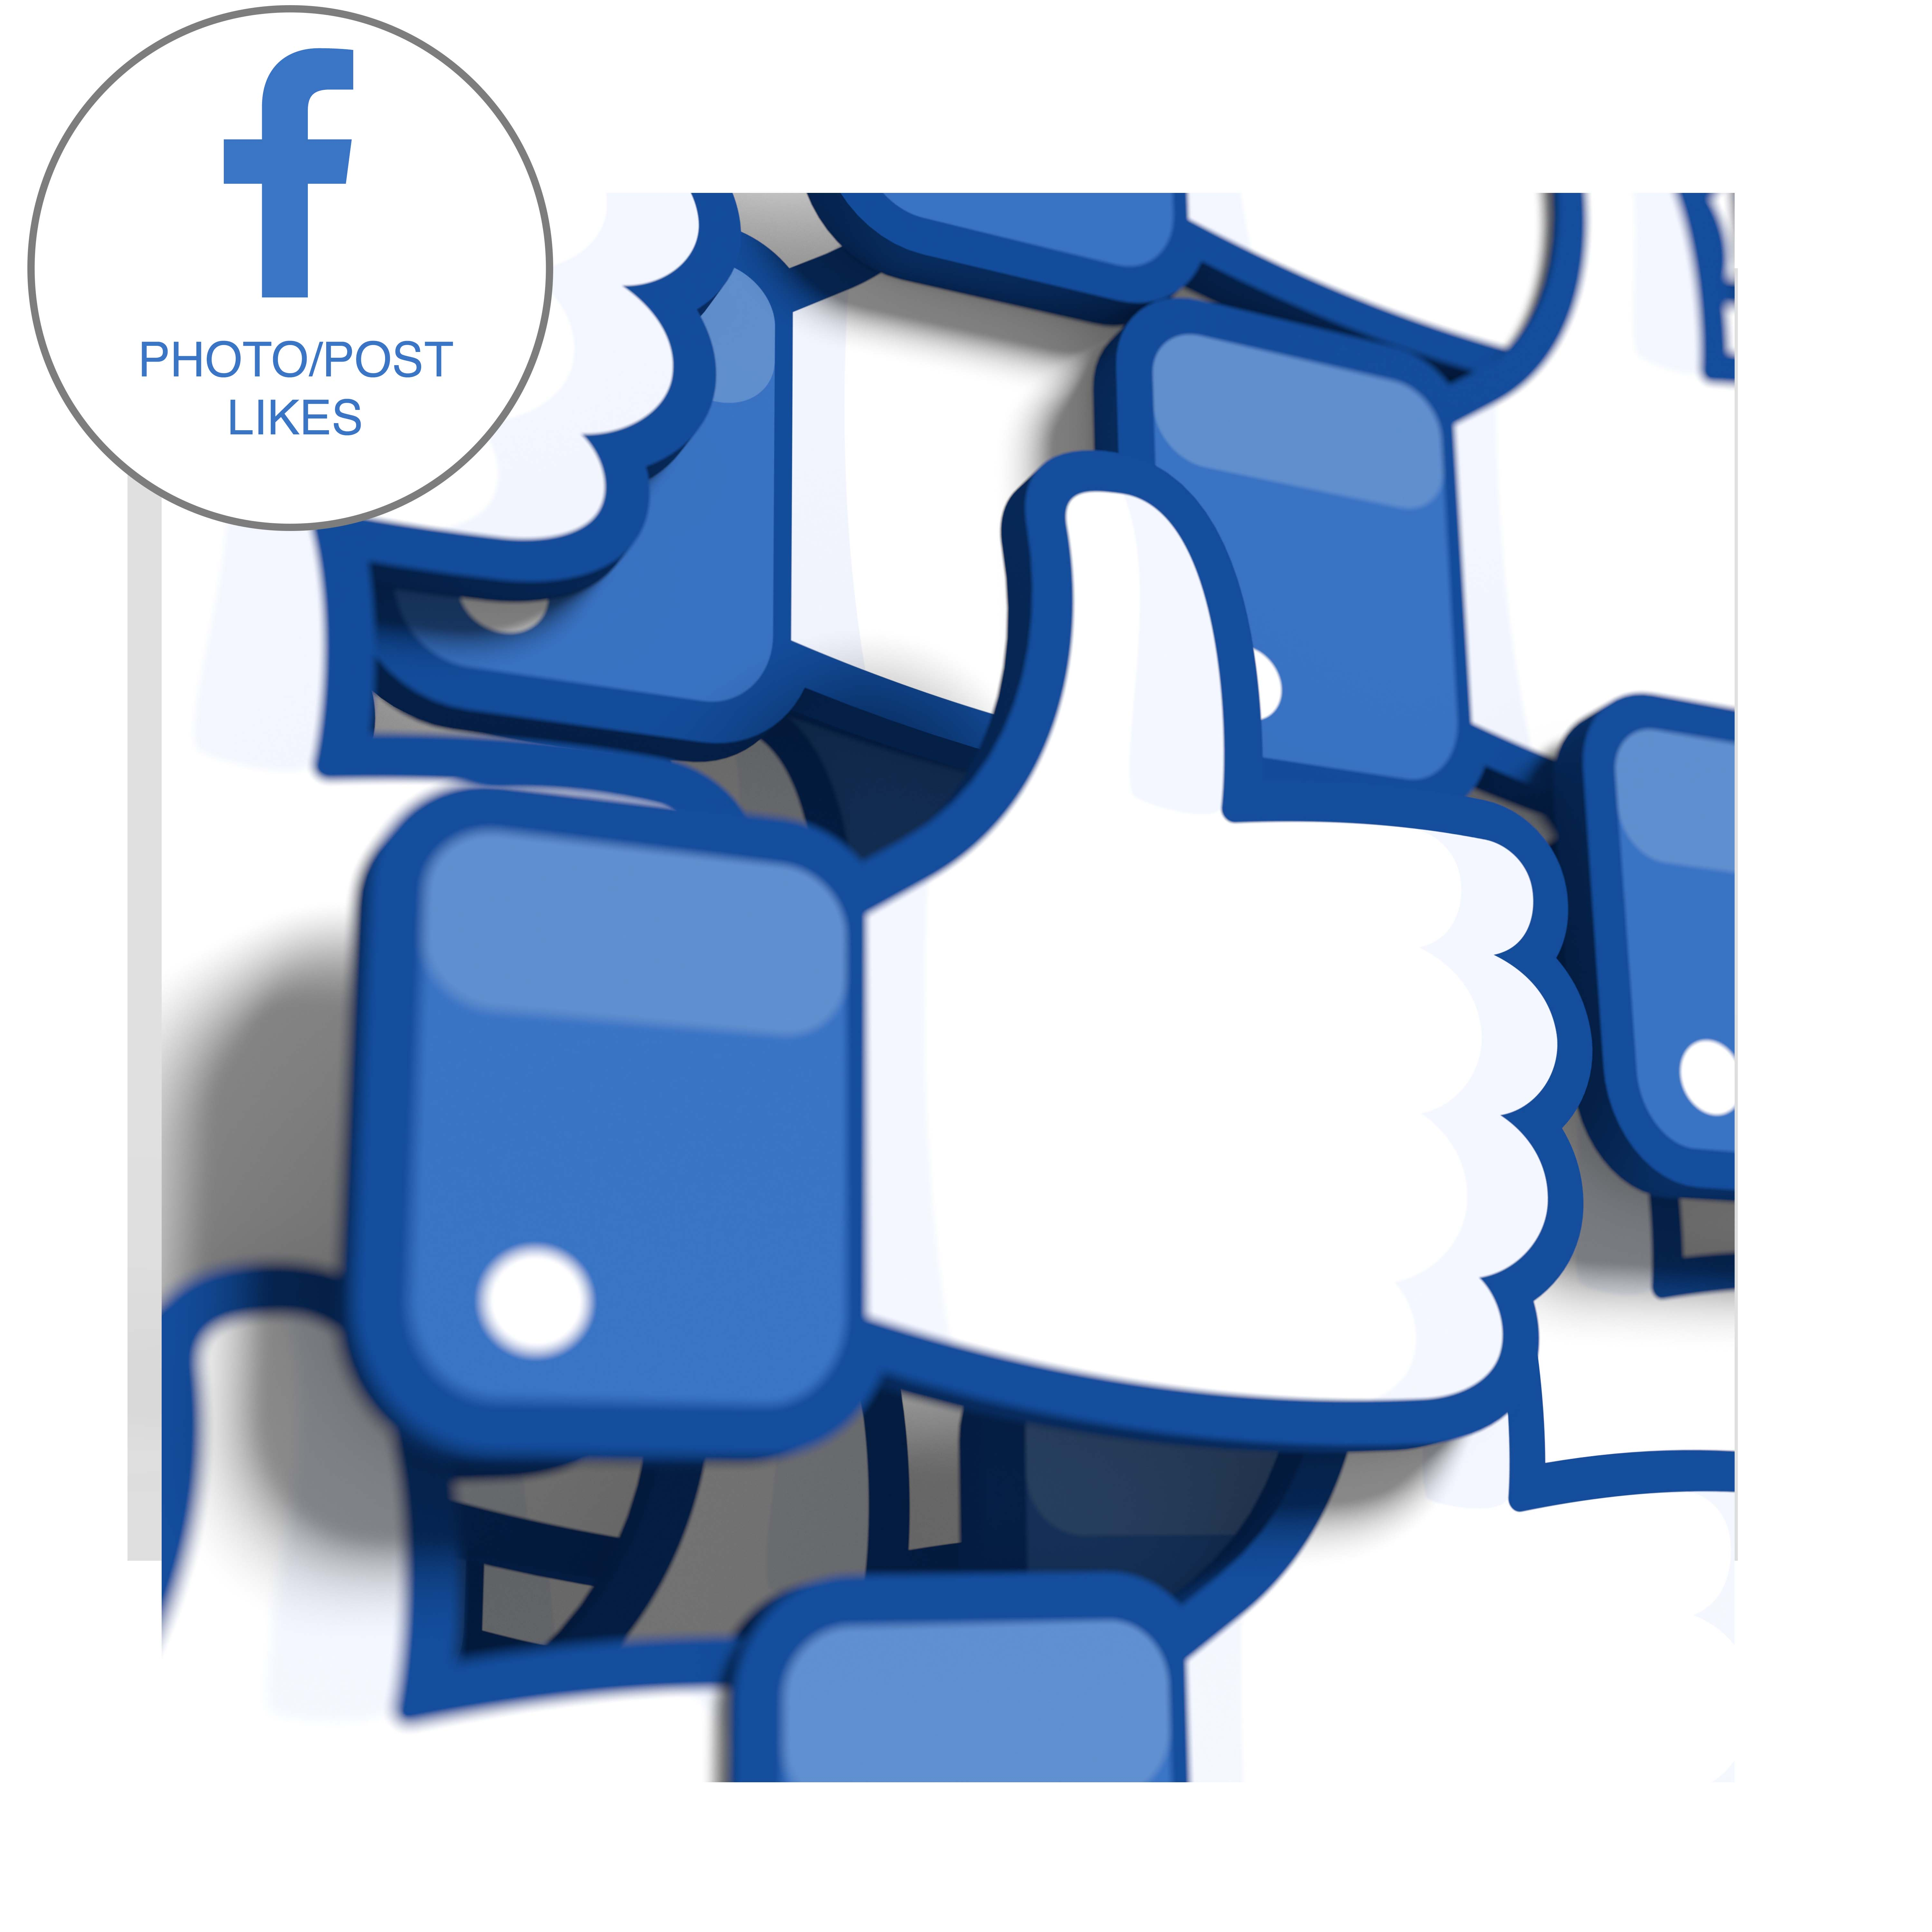 Facebook Photo or Post Likes.